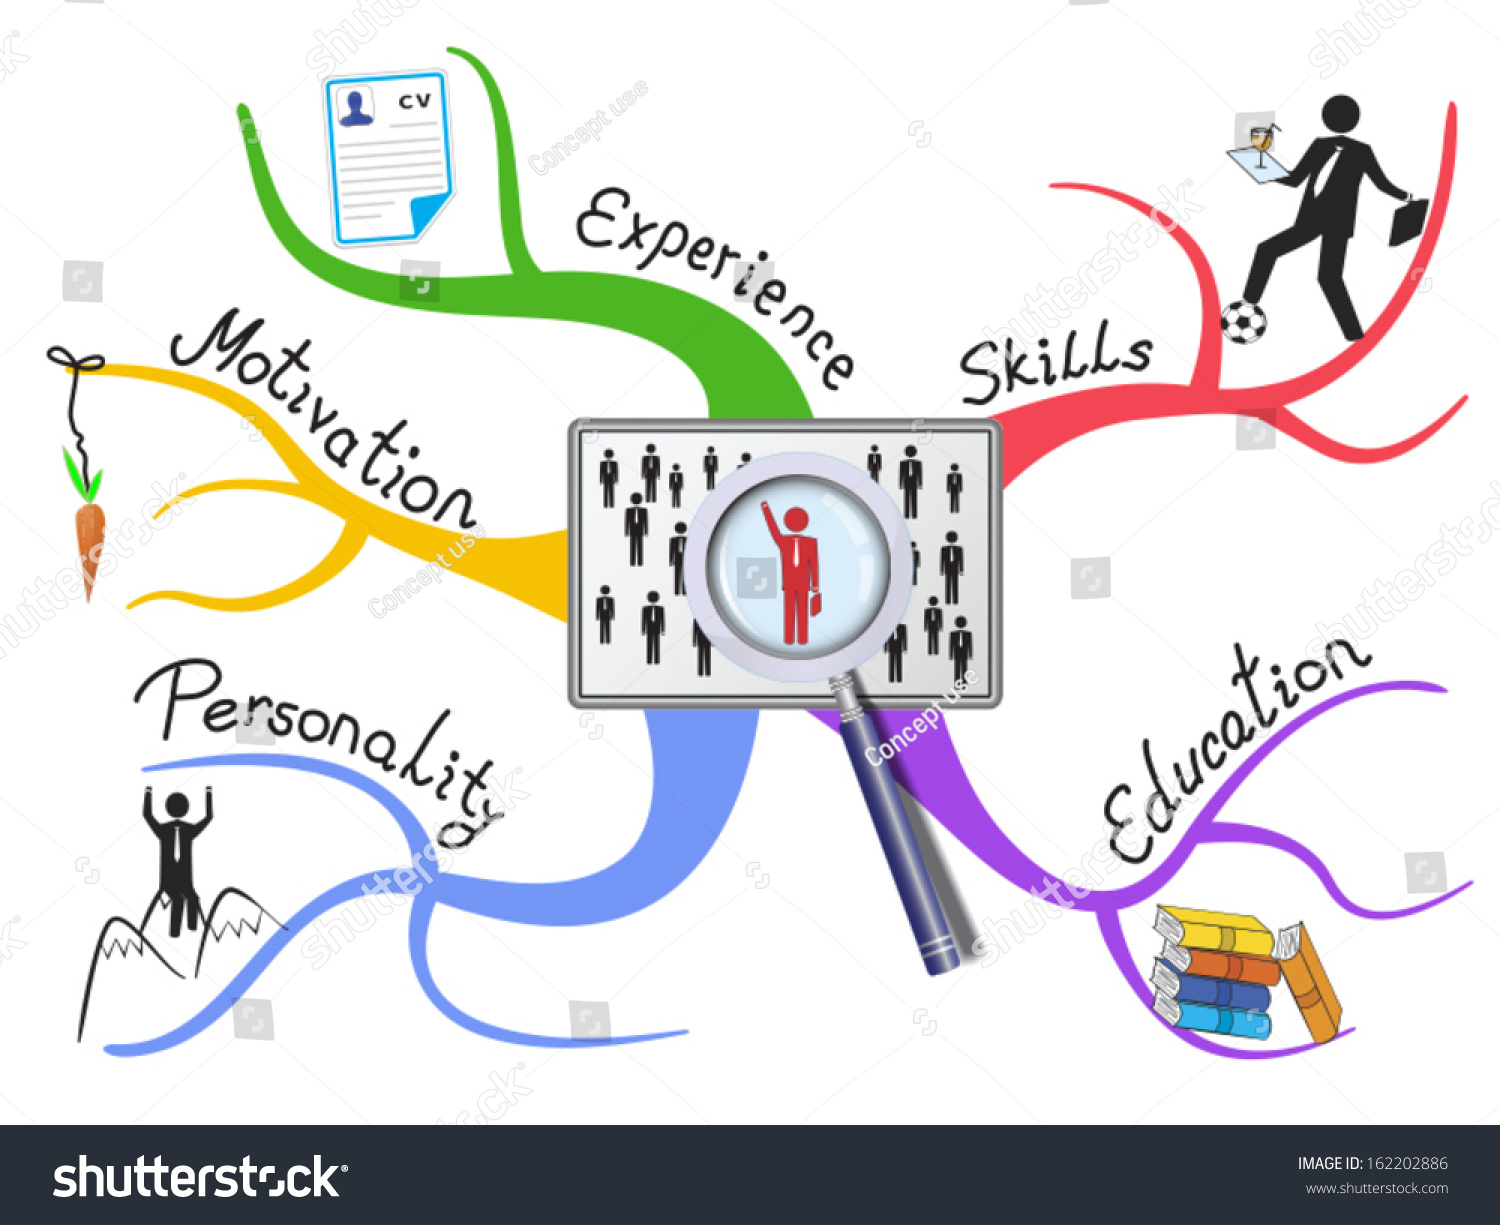 job searching factors colorful diagram important stock vector job searching factors as colorful diagram important and required abilities are introduced on the branches